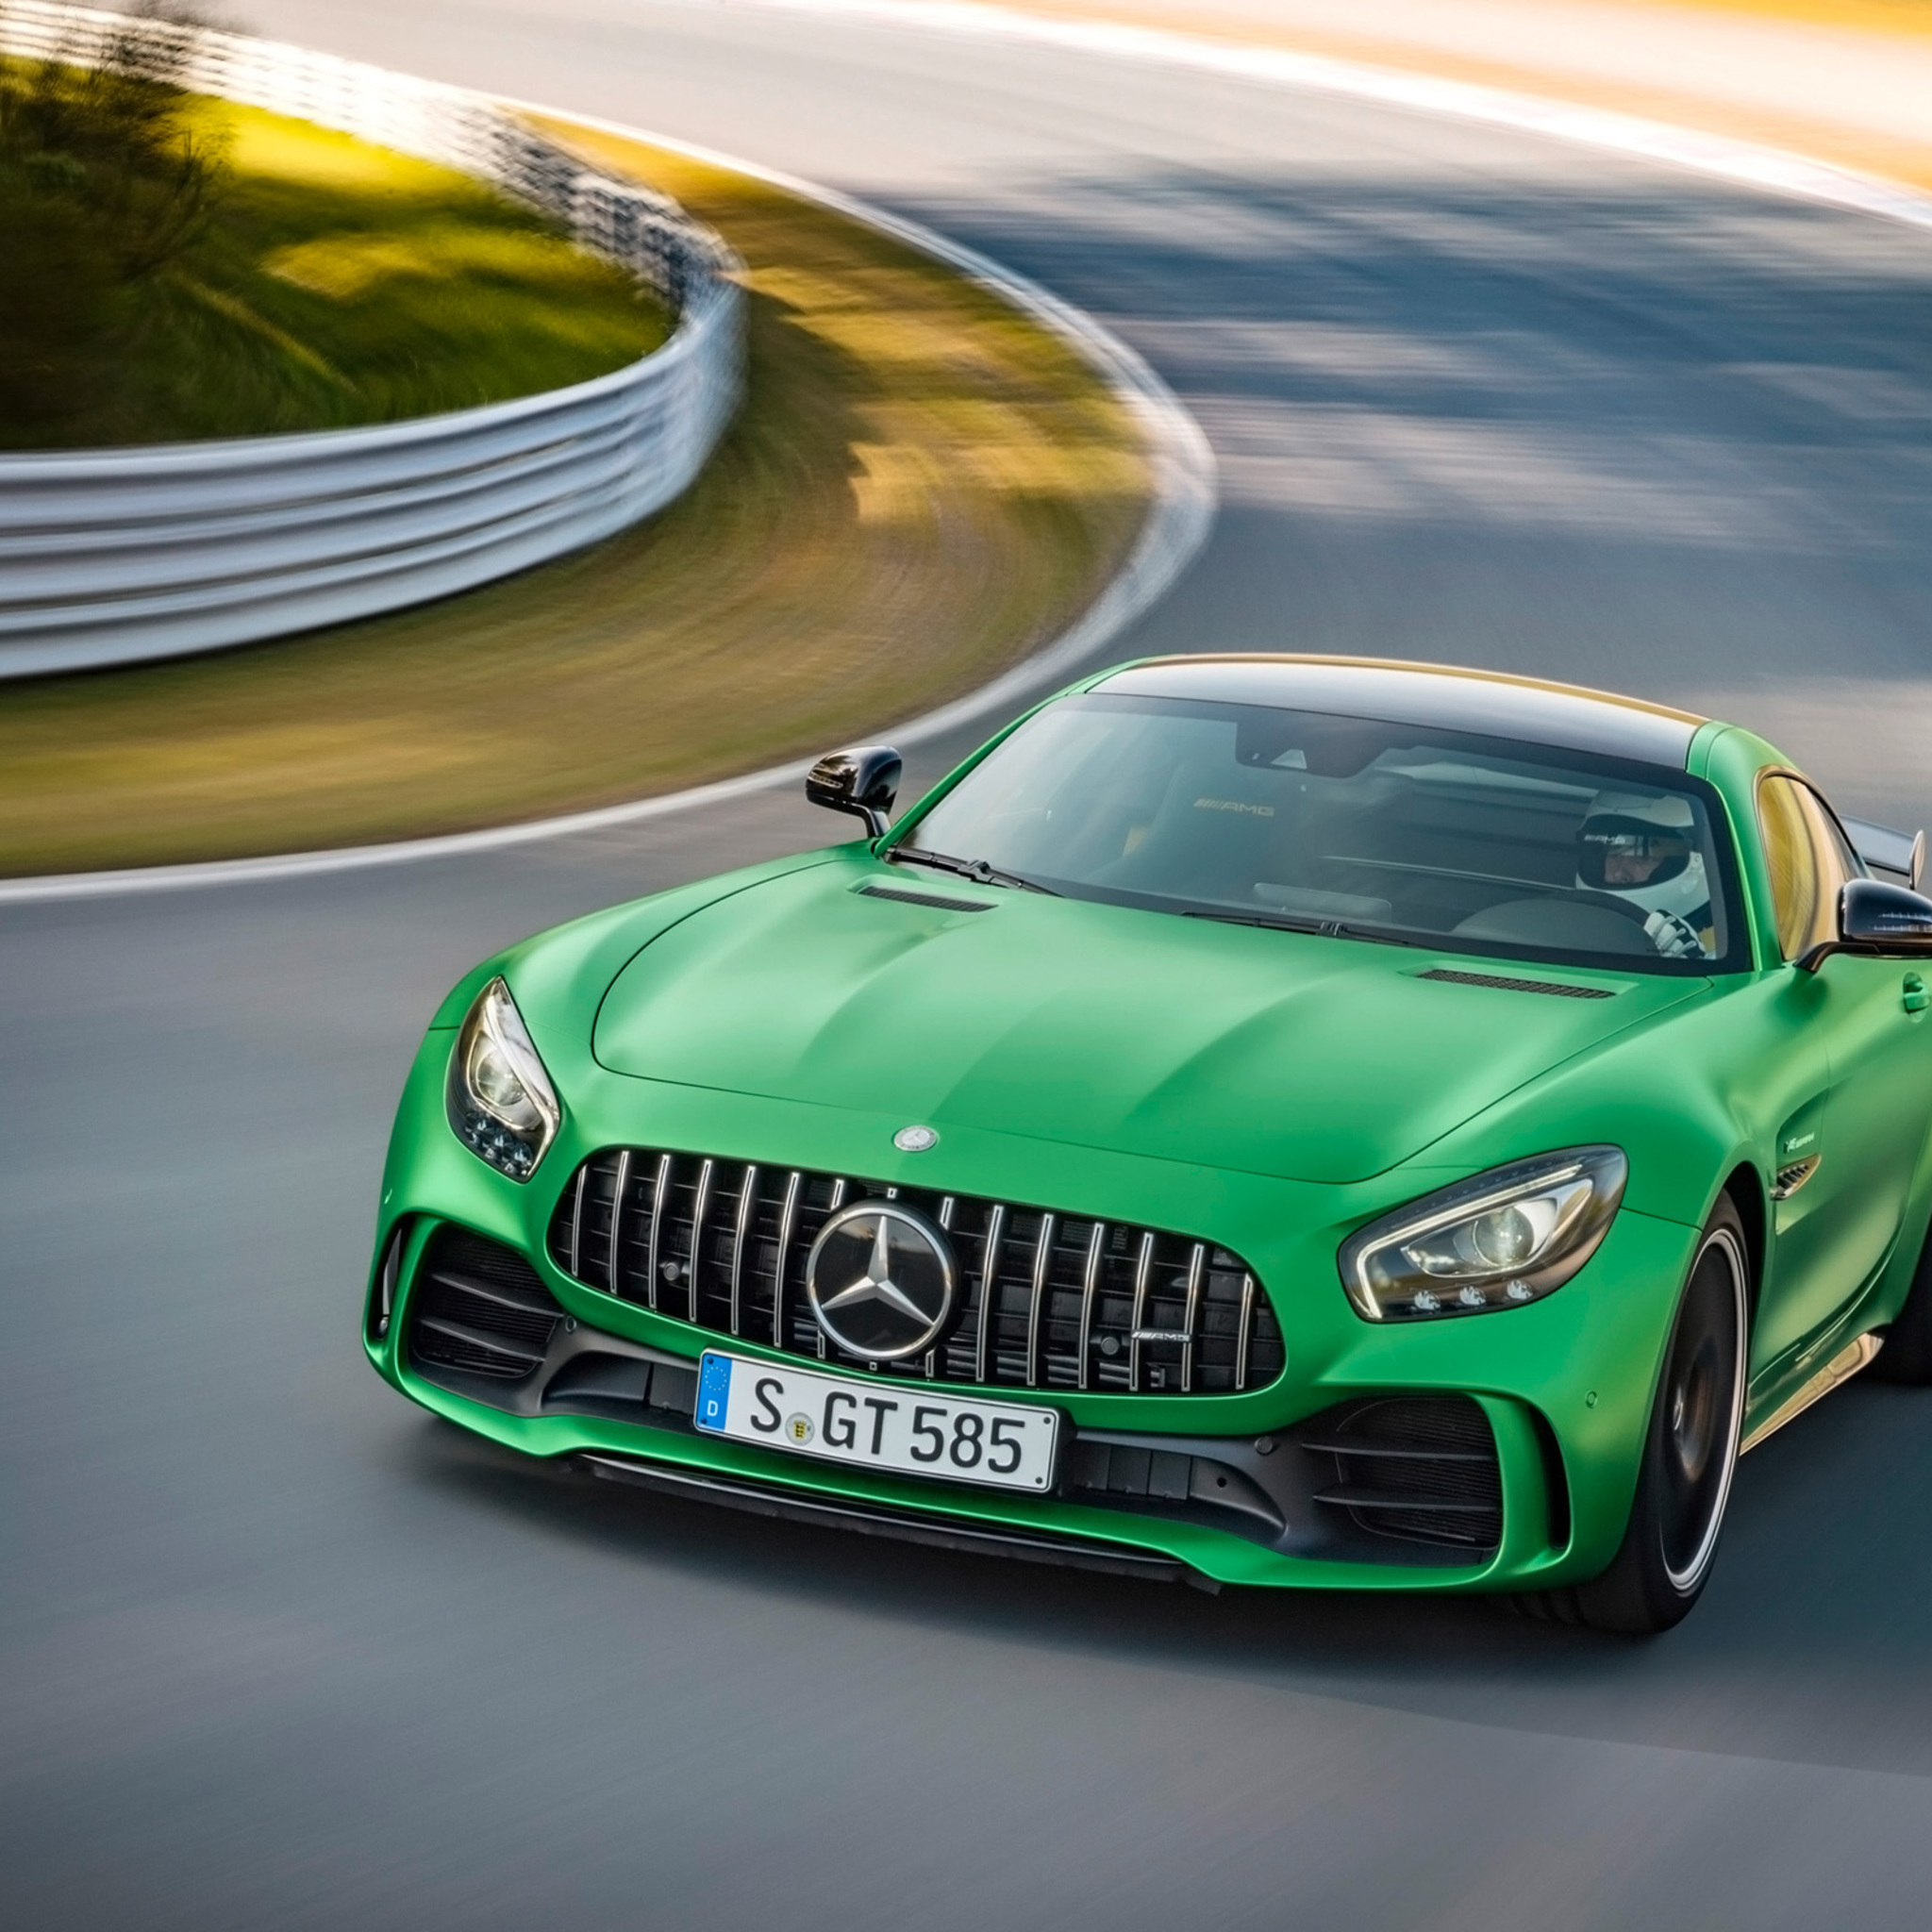 https://hdqwalls.com/download/2017-mercedes-amg-gt-r-ap-2048x2048.jpg